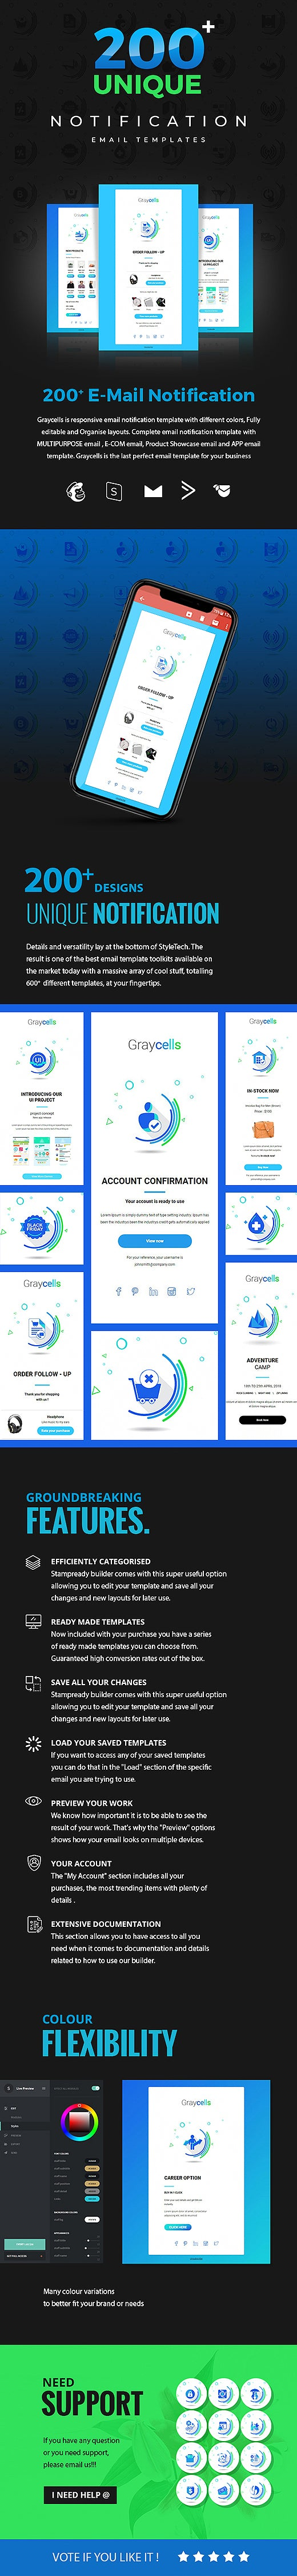 graycells-200-multipurpose-email-notification-templates